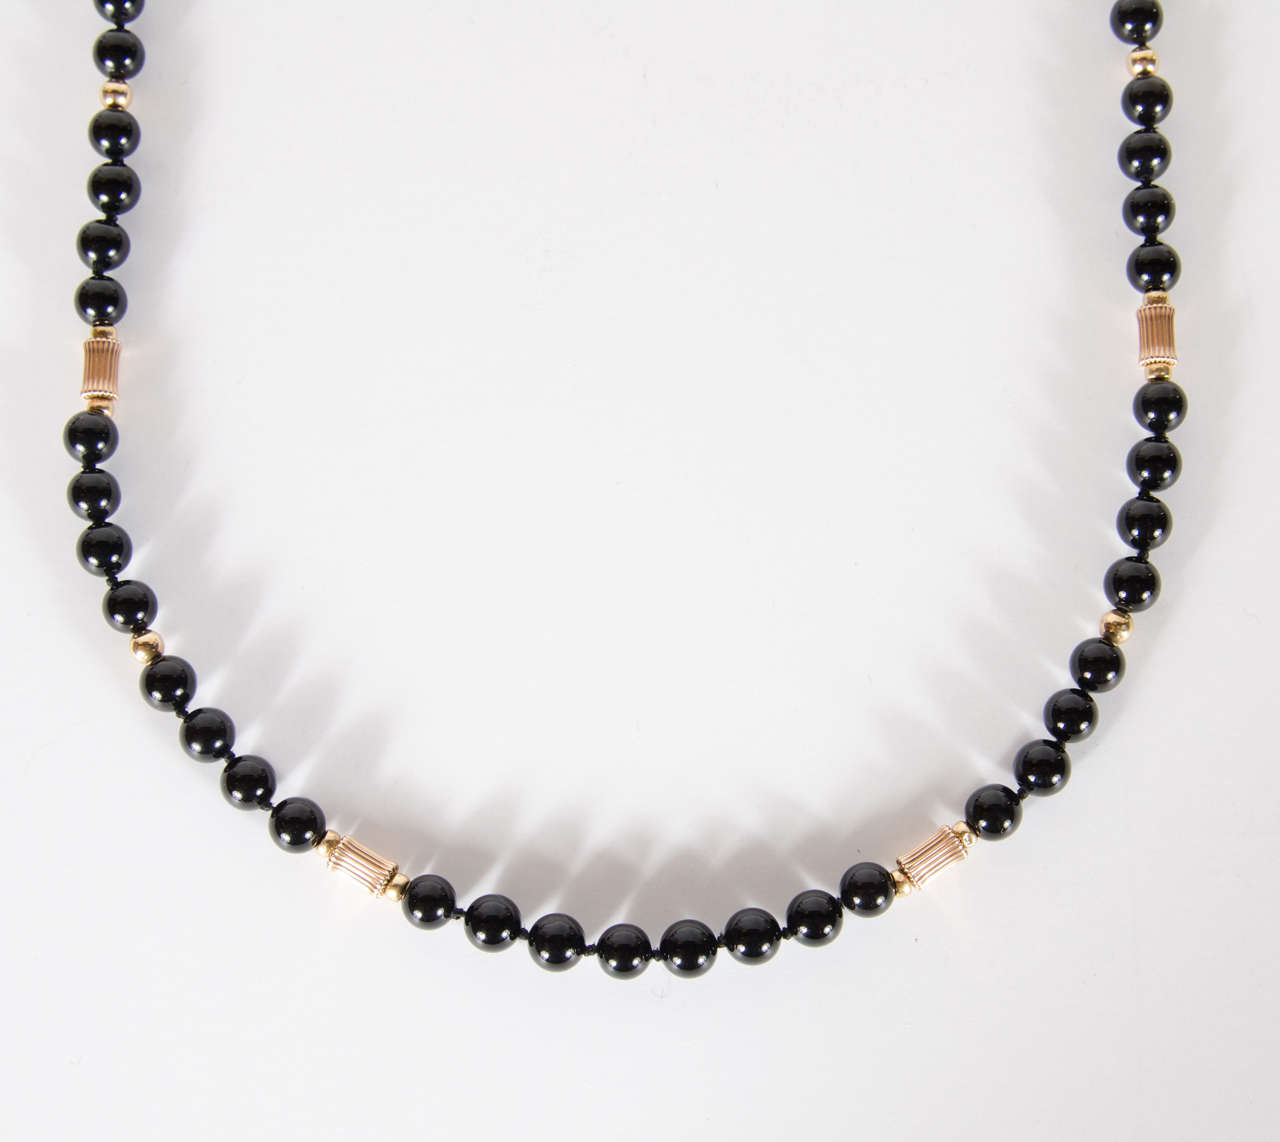 Black Onyx Gold Bead Necklace at 1stdibs